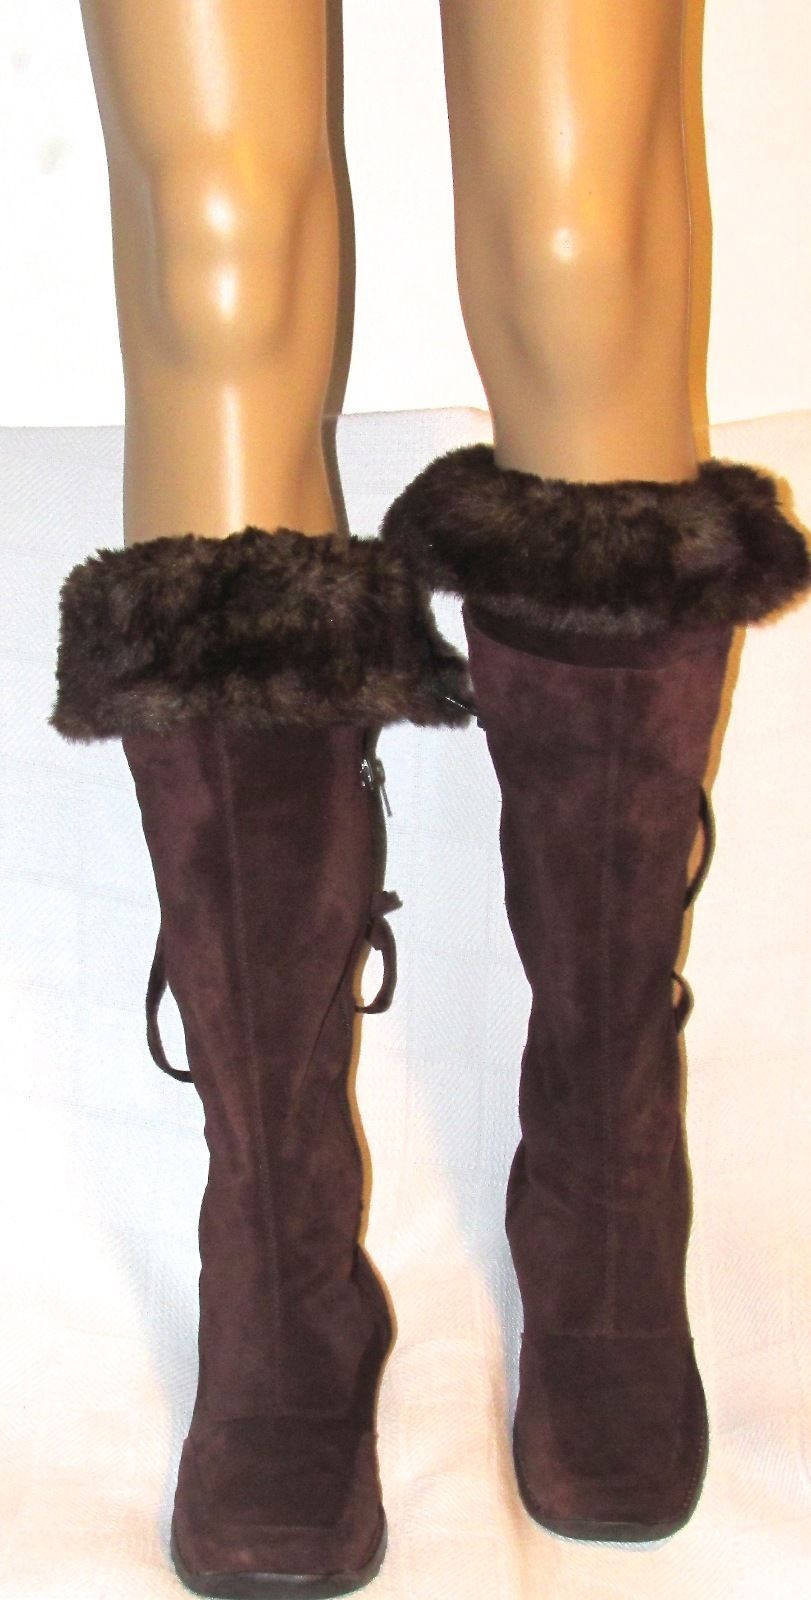 Aerosoles Fur-Ever Women's Brown Suede & Faux Fur Knee High Boots S: 8.5 M Low